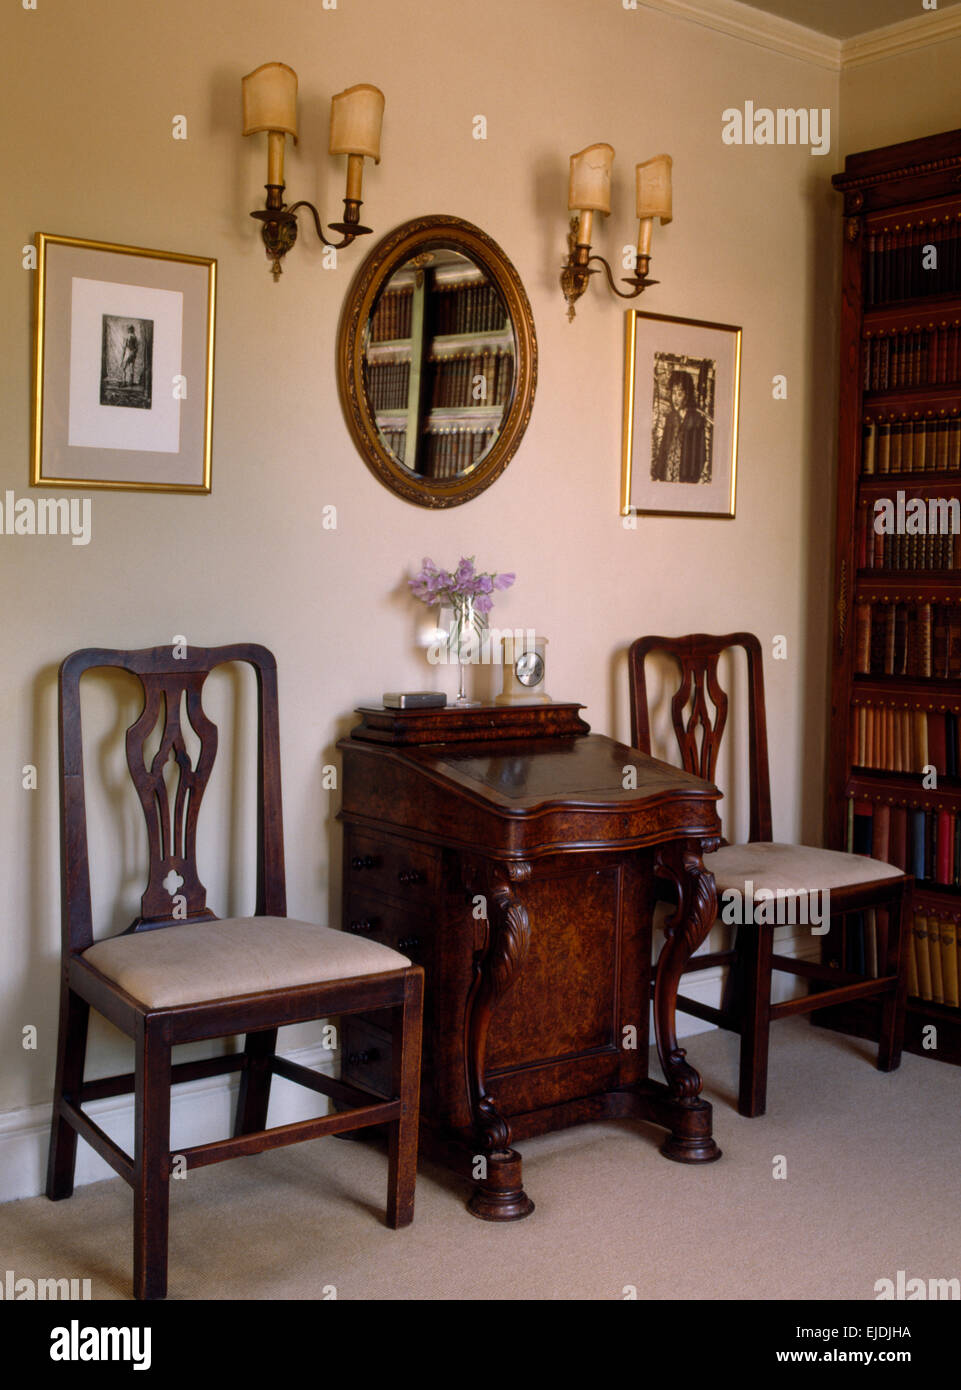 Dining chairs on either side of small antique desk in old fashioned study - Dining Chairs On Either Side Of Small Antique Desk In Old Fashioned